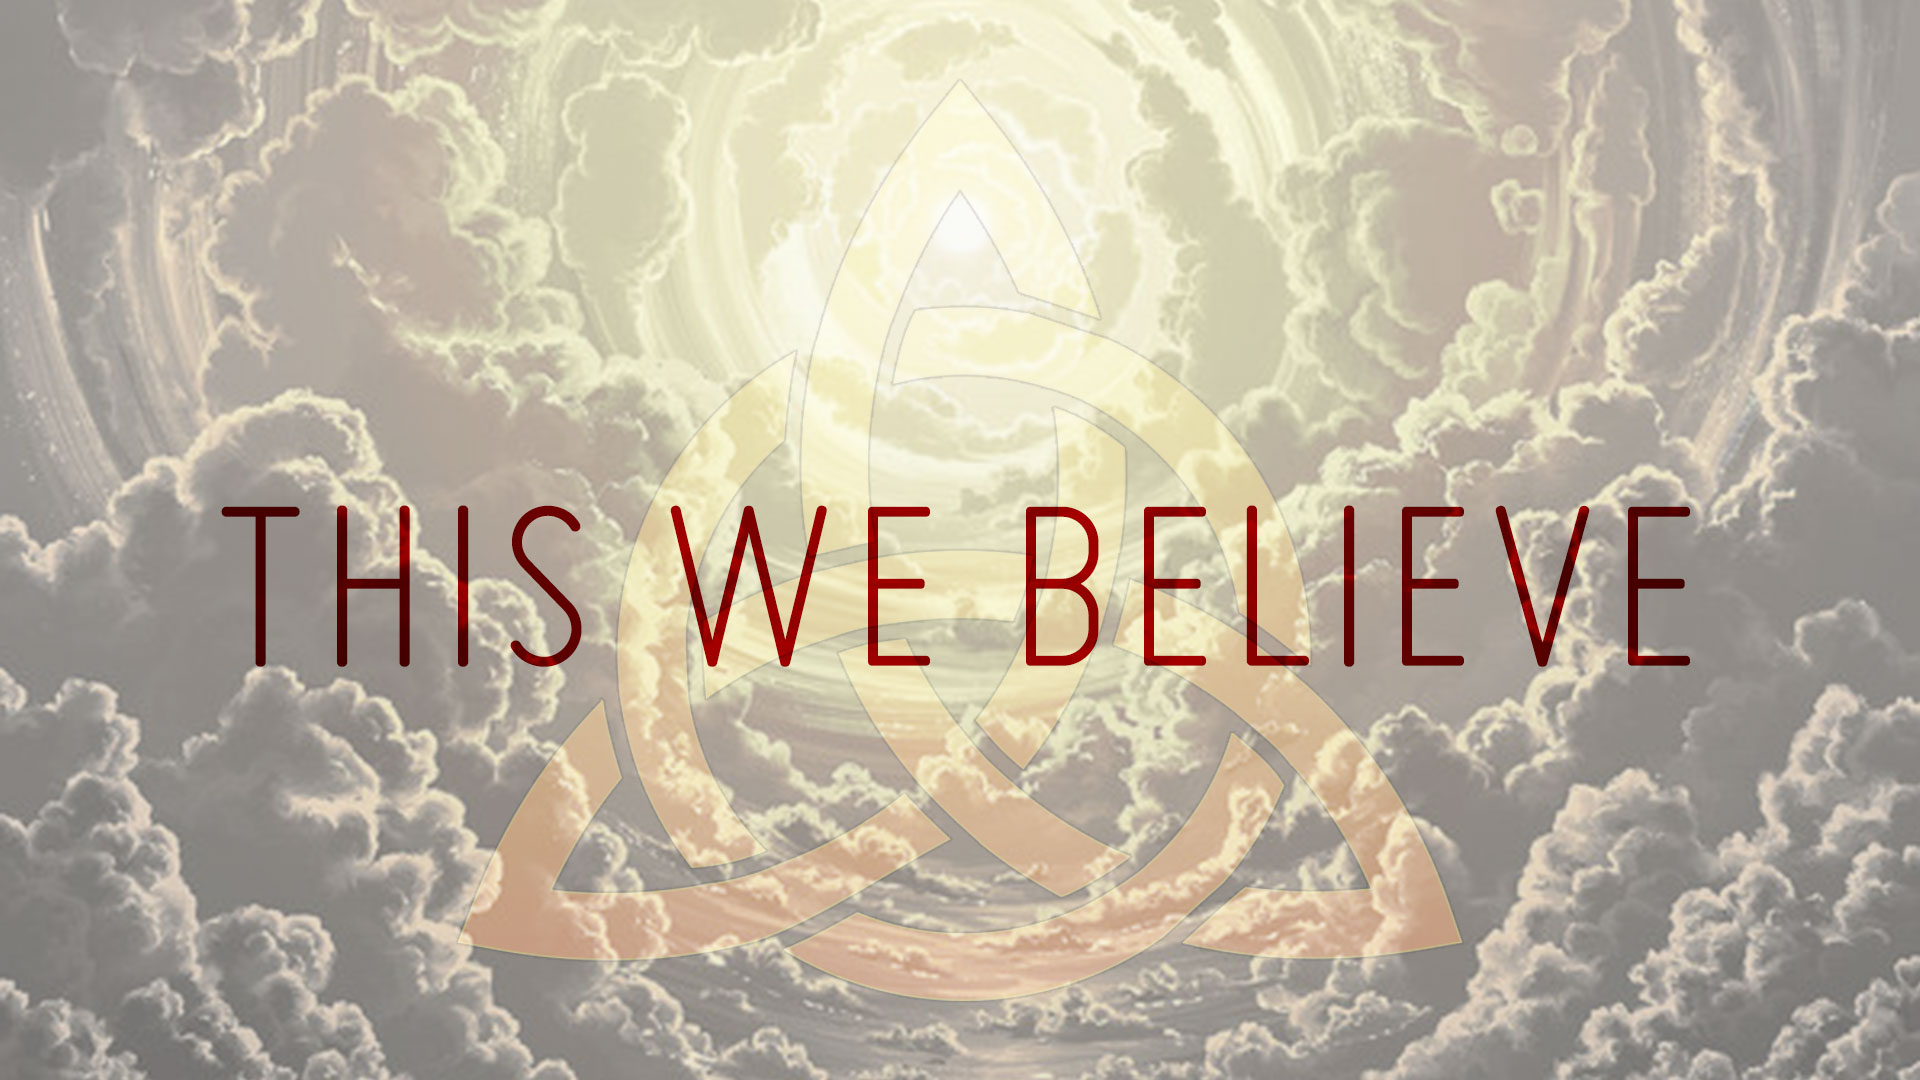 View all sermons in This We Believe